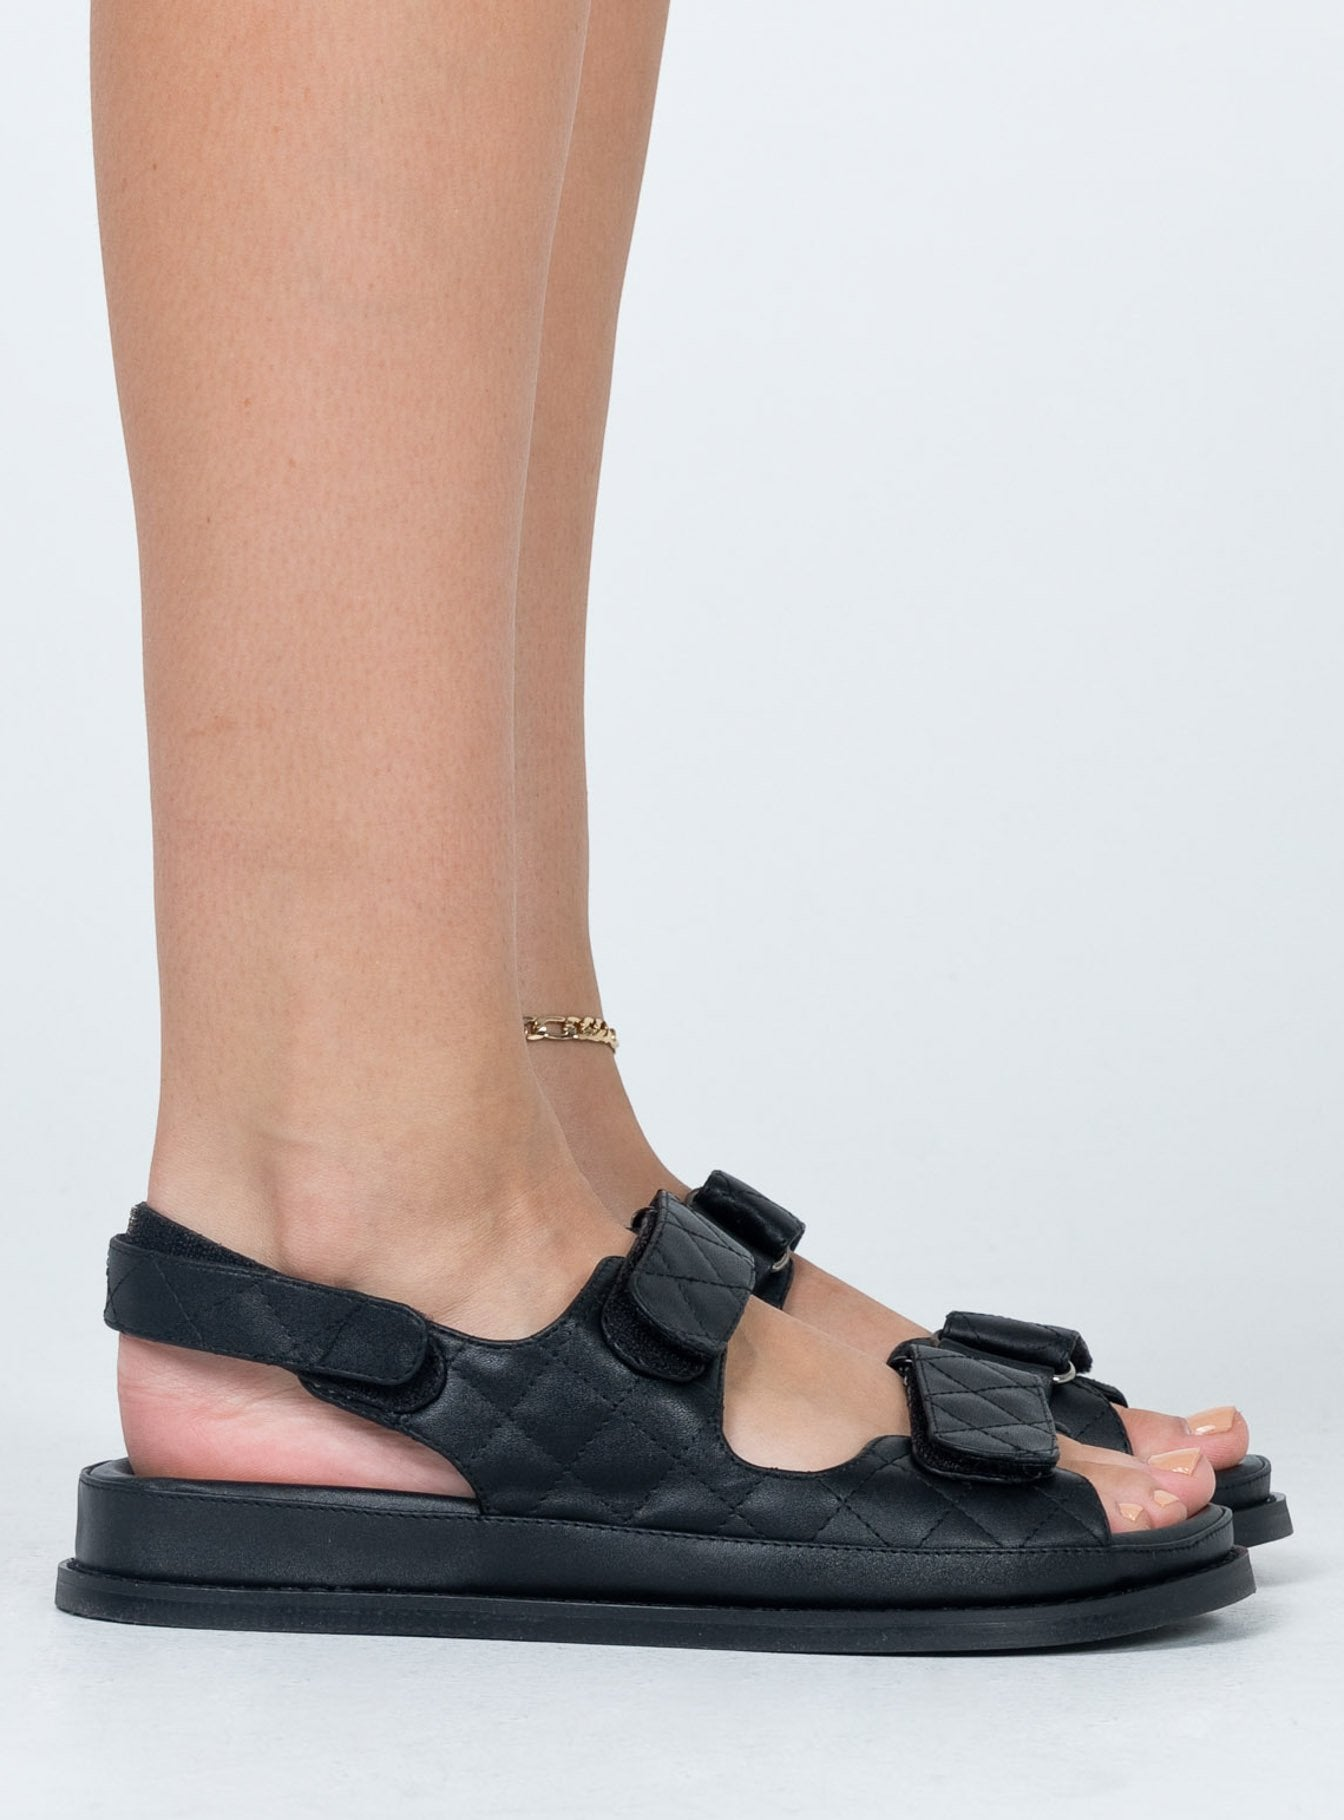 Wake Up Love Sandals Black